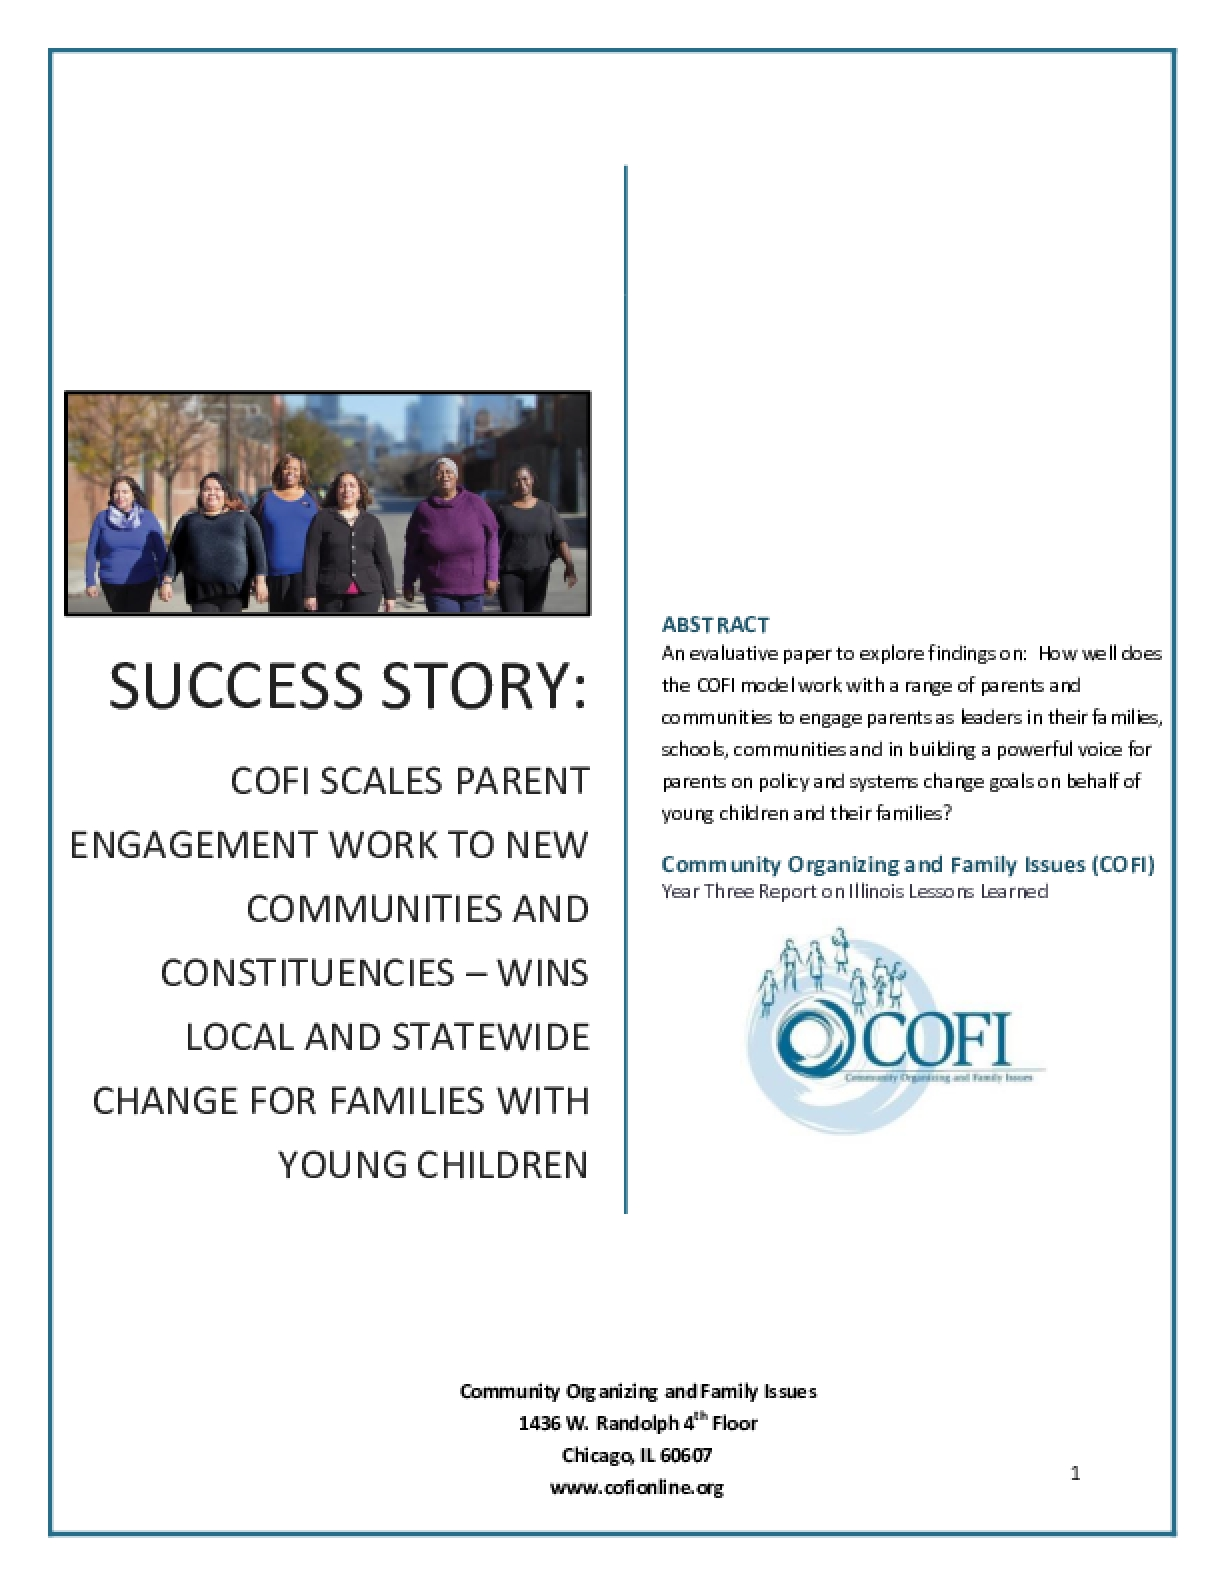 Success Story: COFI Scales Parent Engagement Work to New Communities and Constitutiencies - Wins Local and Statewide Change for Families and Young Children